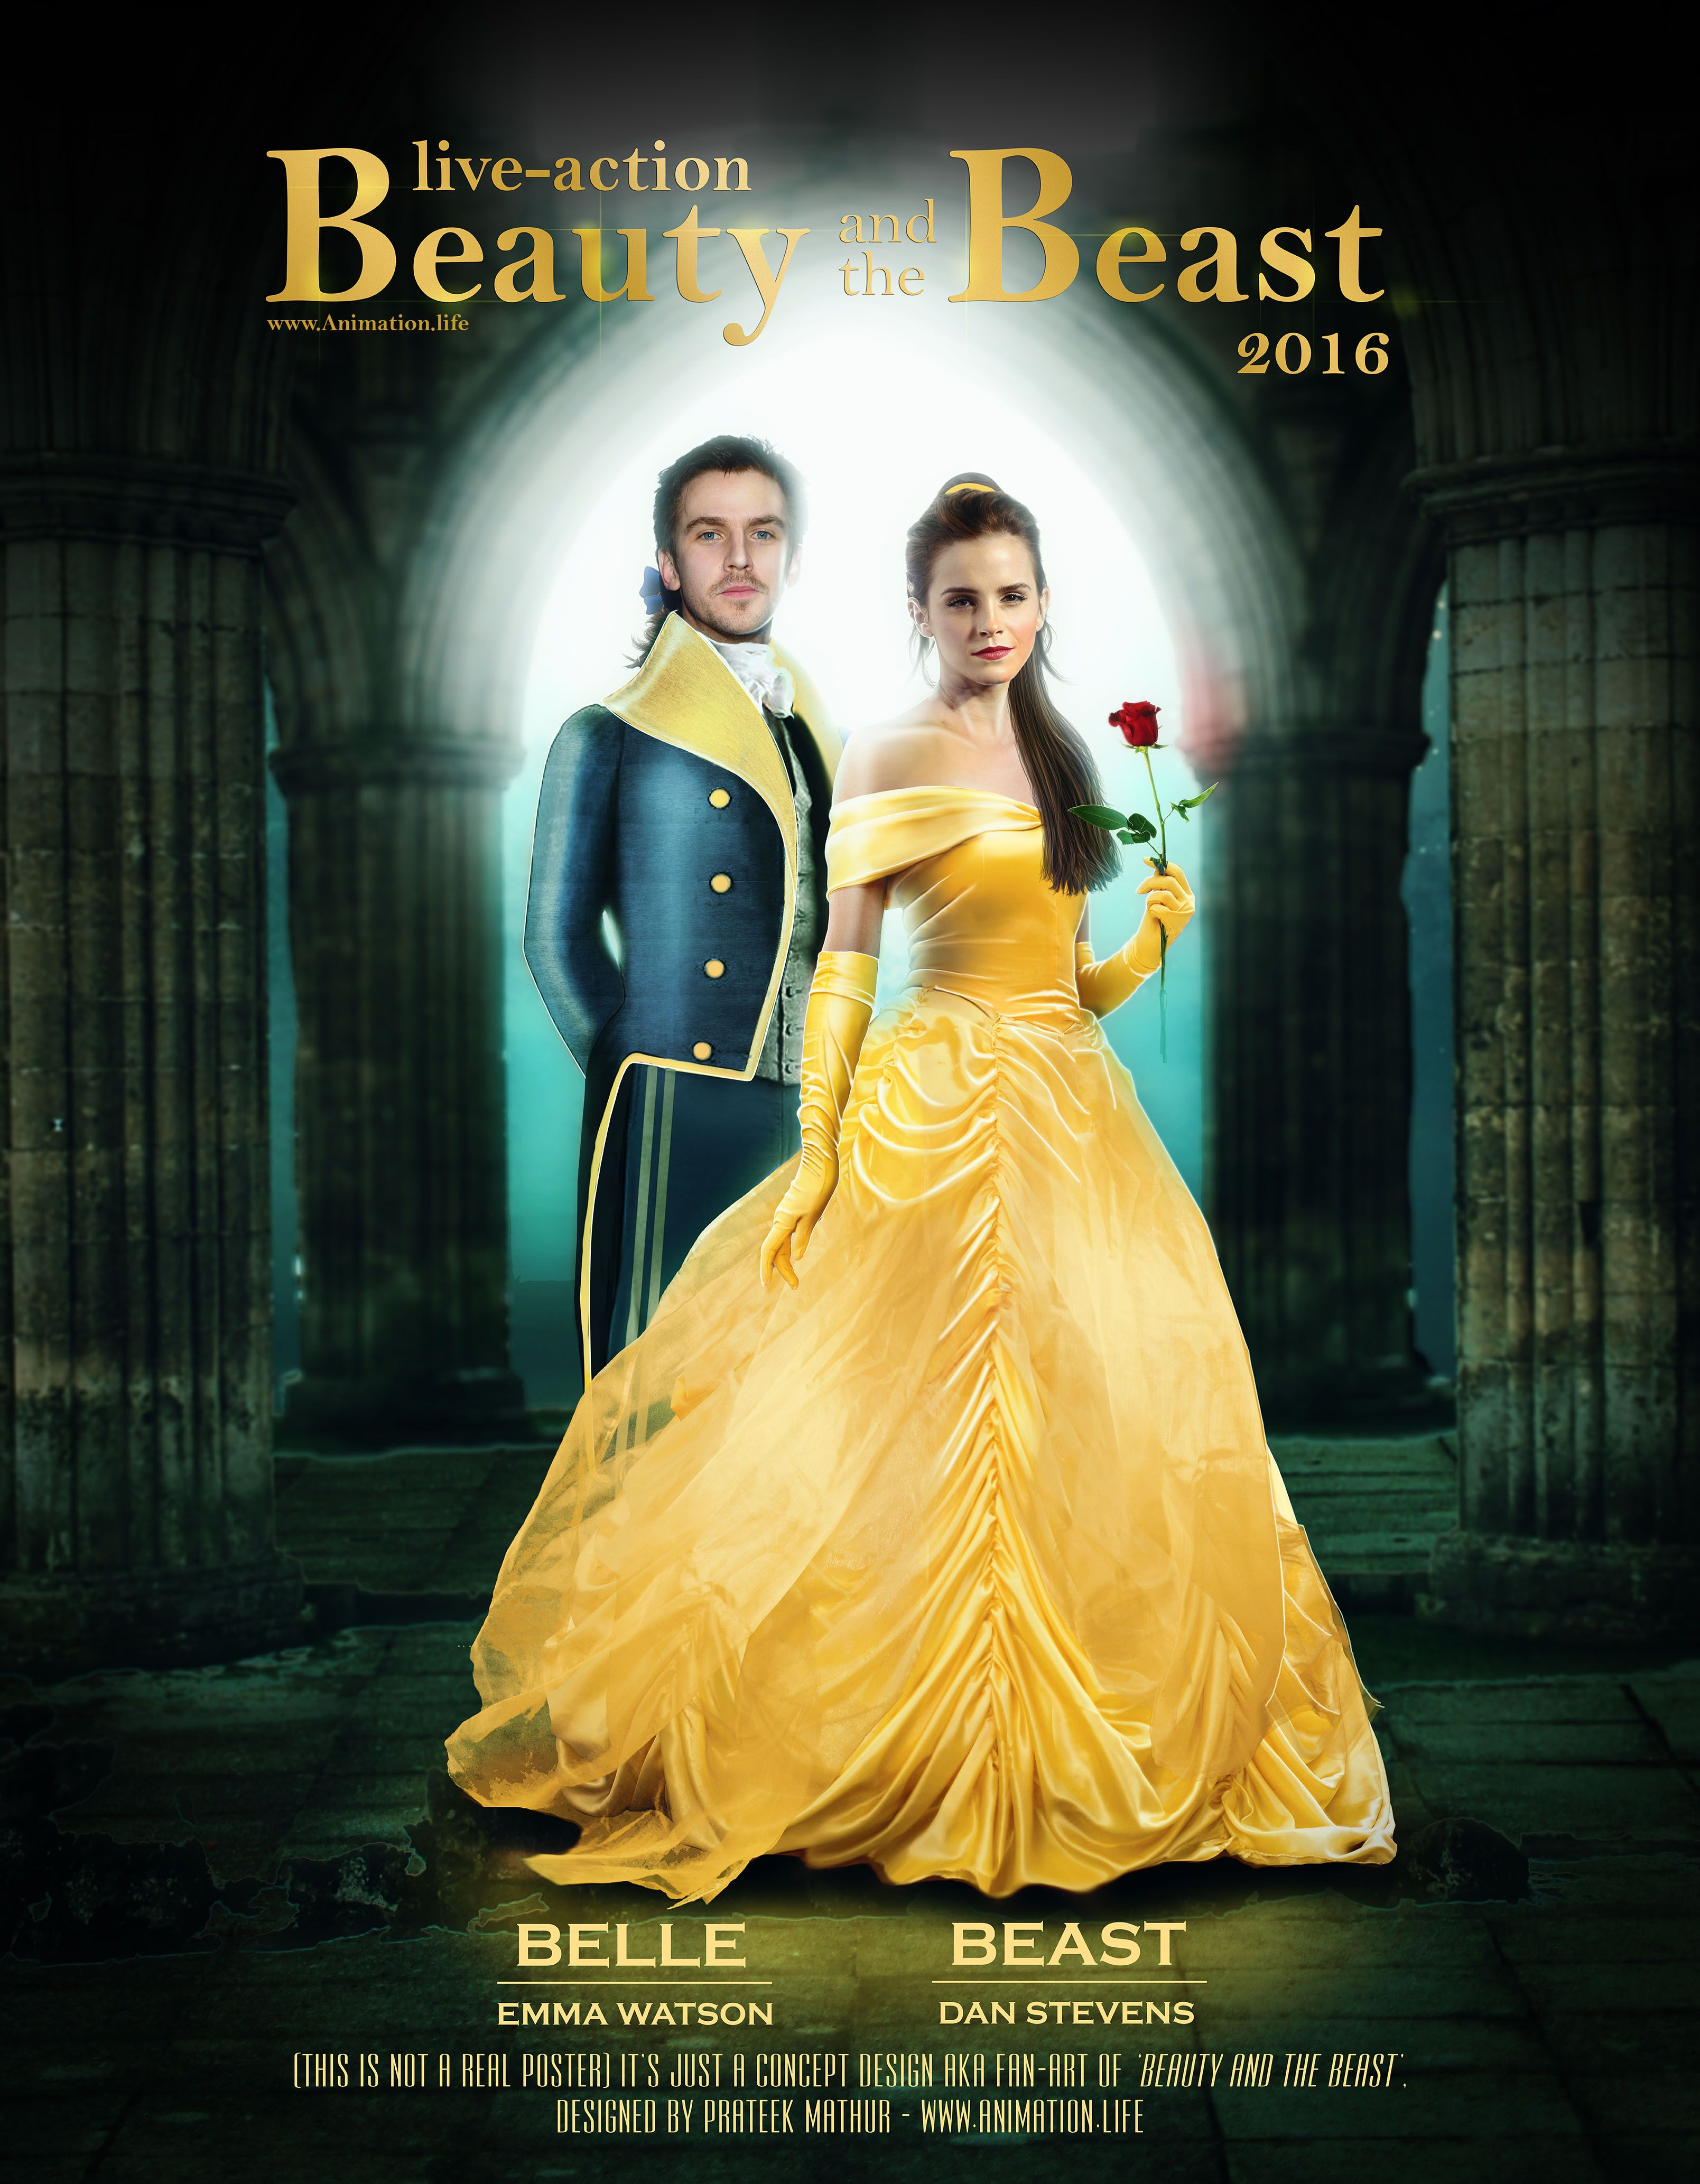 Movie Inspiration Beauty And The Beast By Emma Watson And Dan Stevens This Movie Response T Beauty And The Beast Movie Beauty And The Beast The Beast Movie